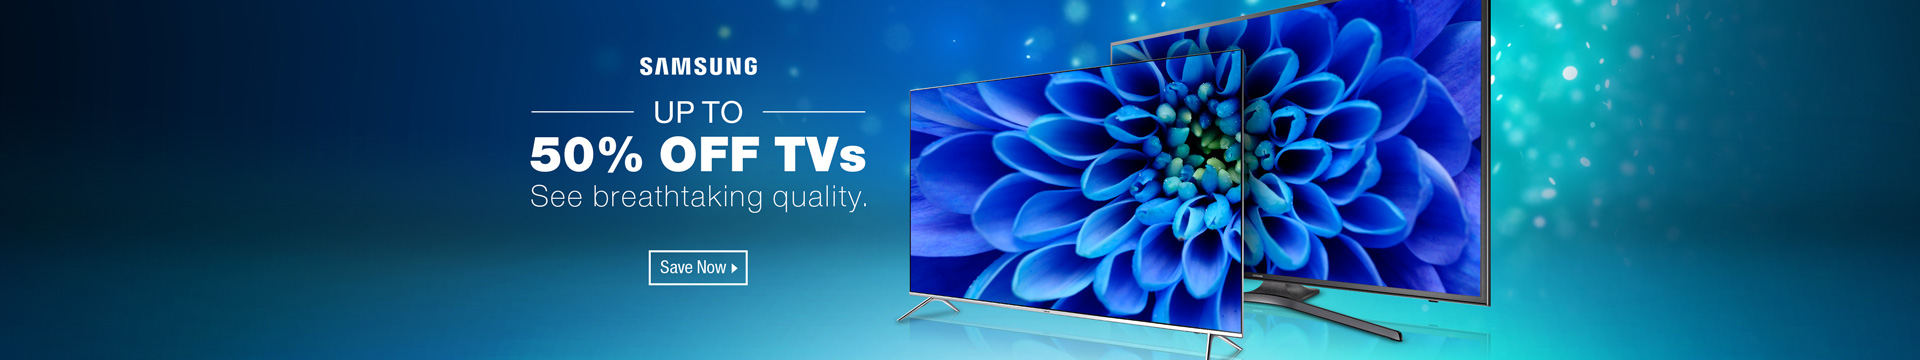 Up to 50% off TVs